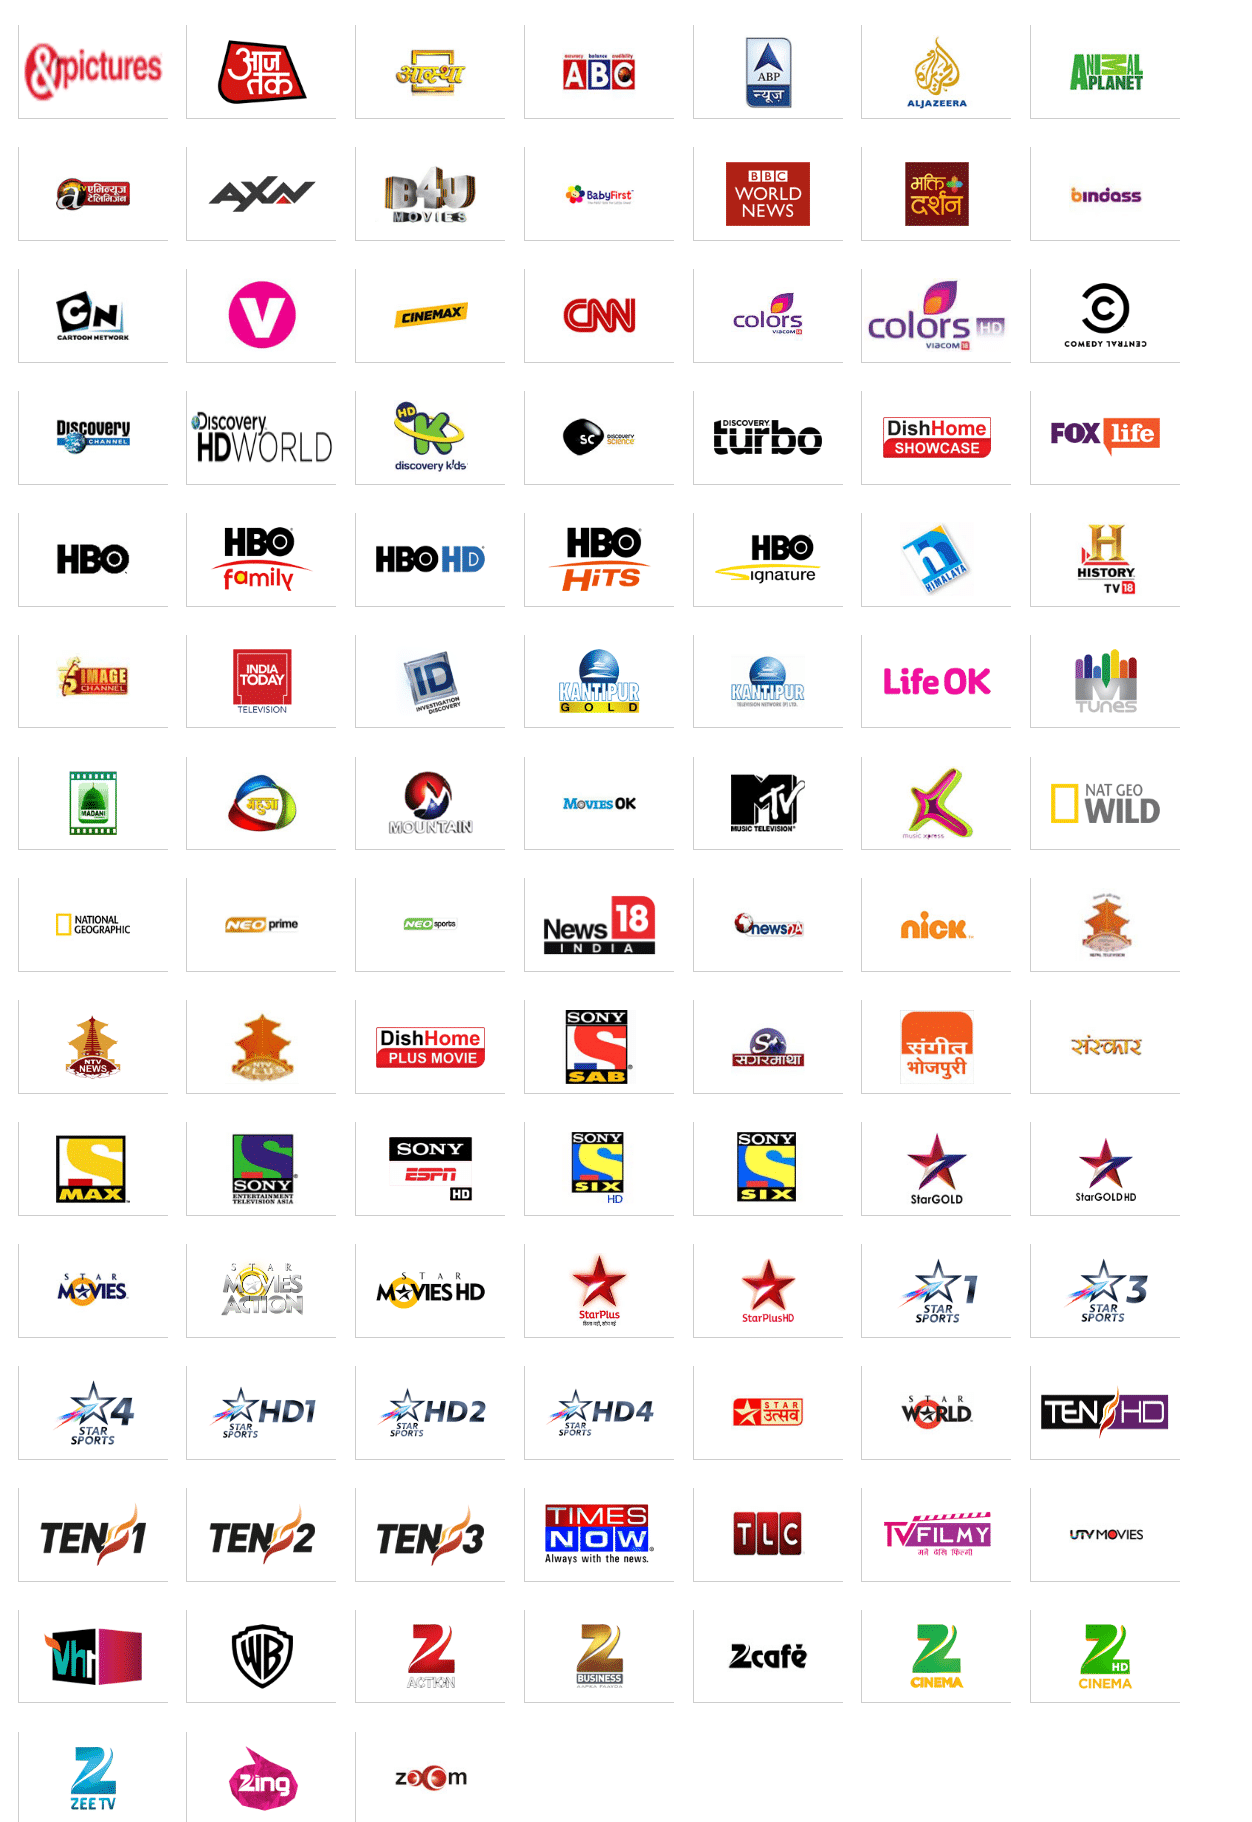 Dish Tv Channel List Images Galleries